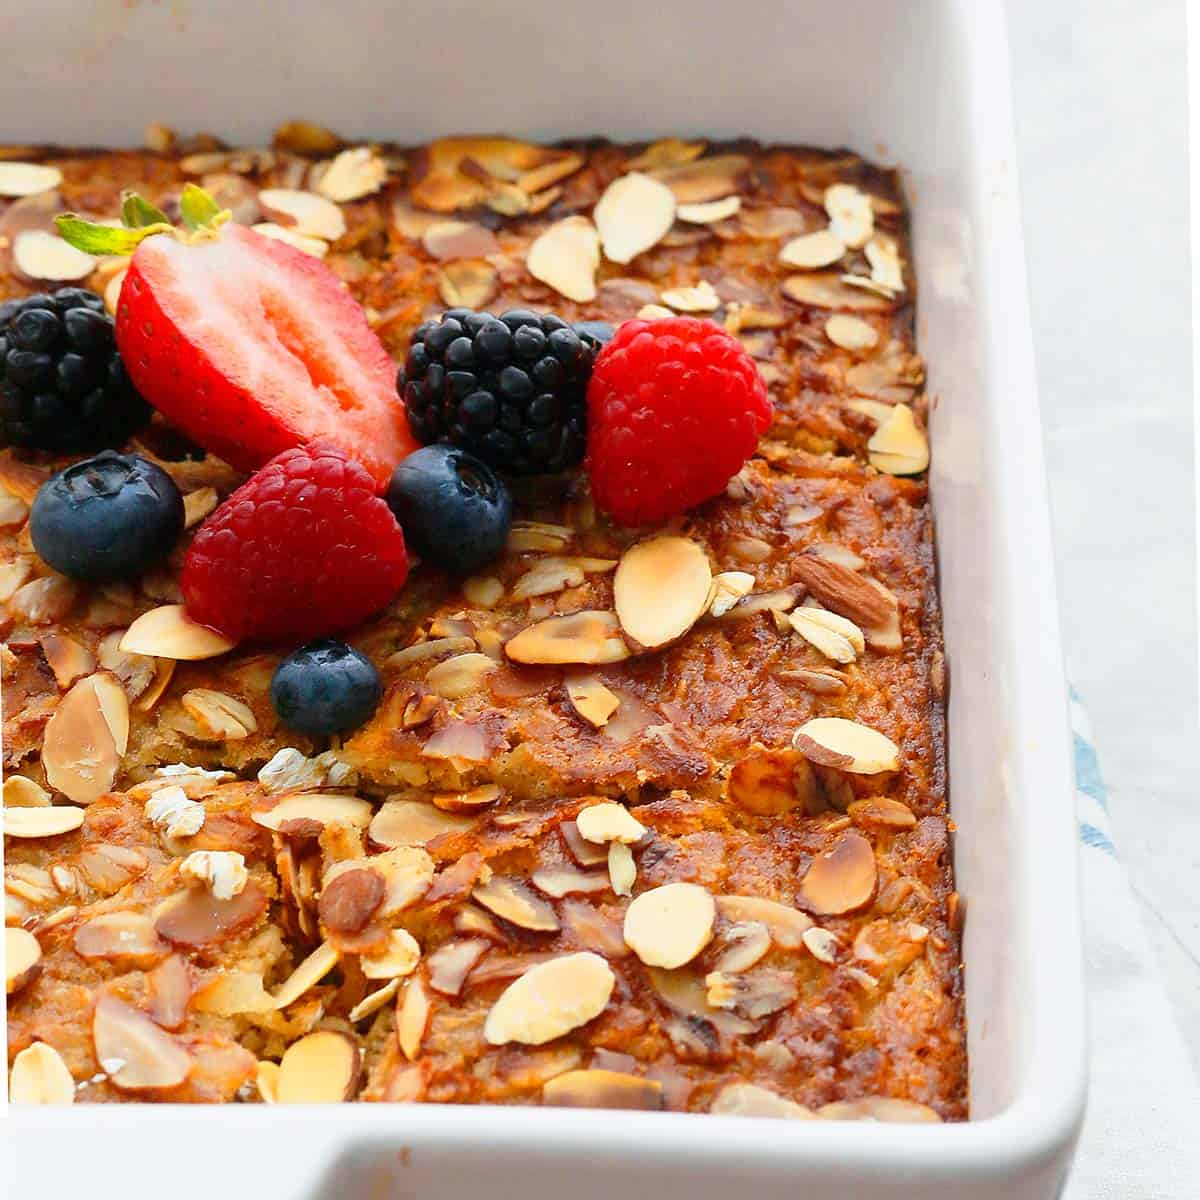 gluten free baked oatmeal with bananas topped with fresh fruits.